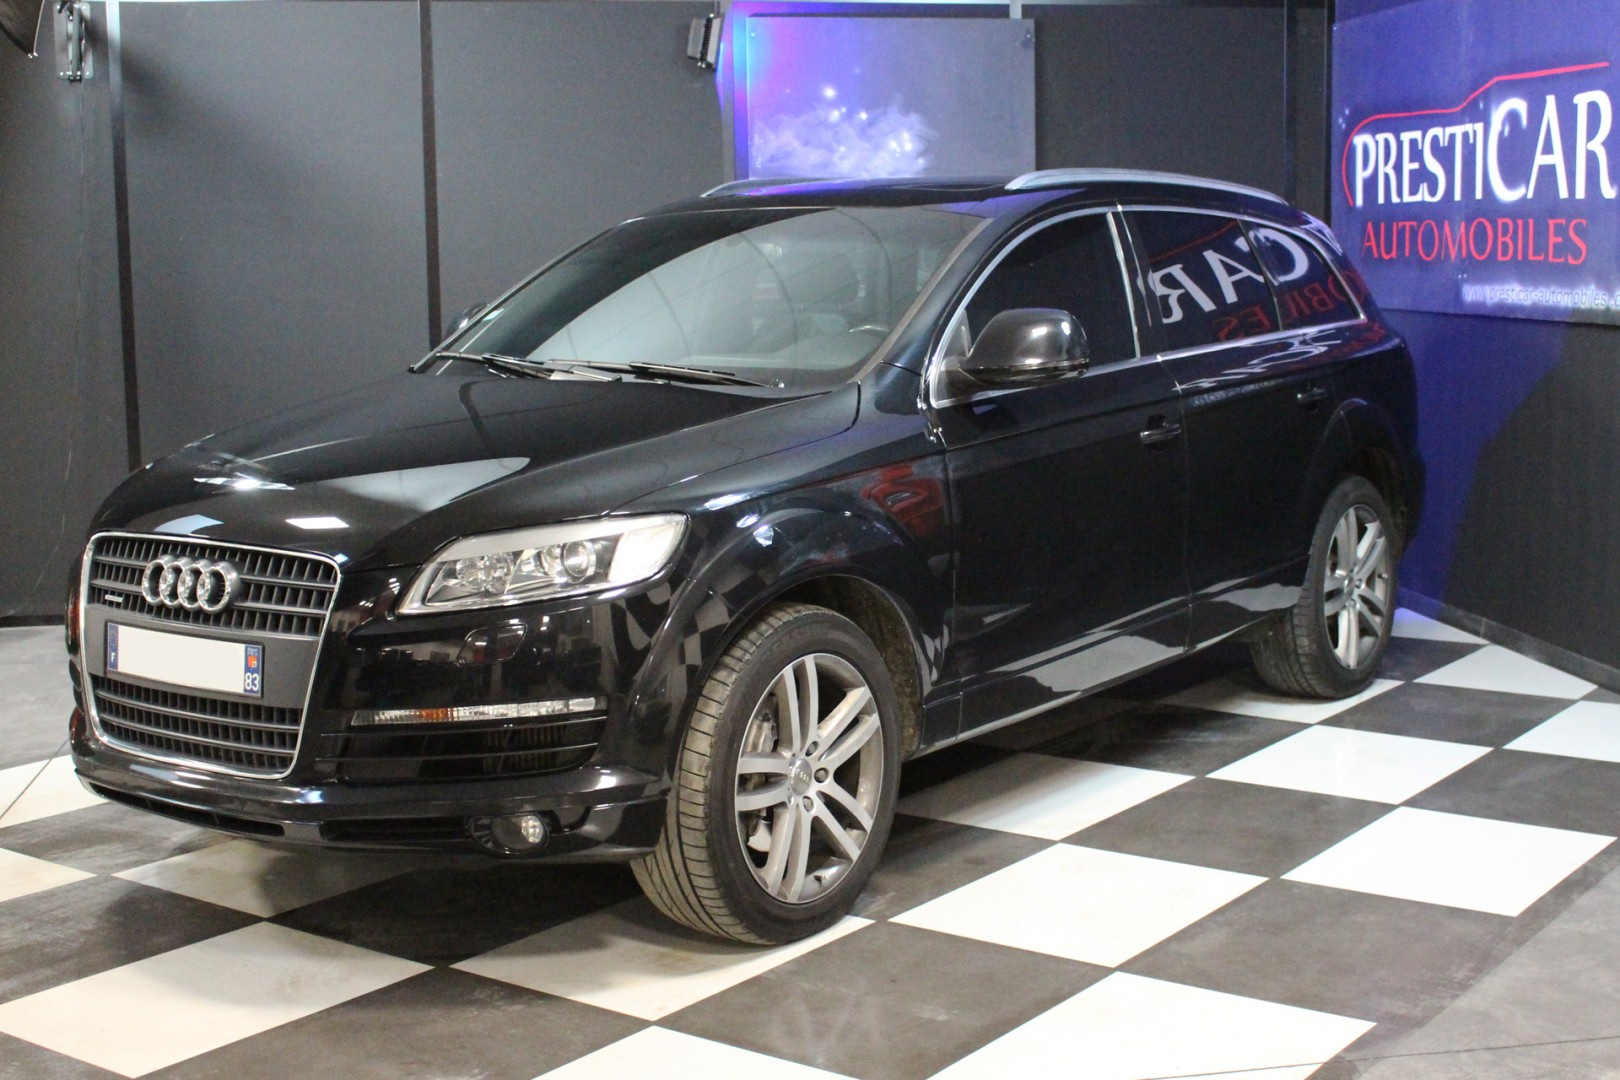 audi q7 3 0 v6 tdi 240 avus 7 places presticar automobiles. Black Bedroom Furniture Sets. Home Design Ideas